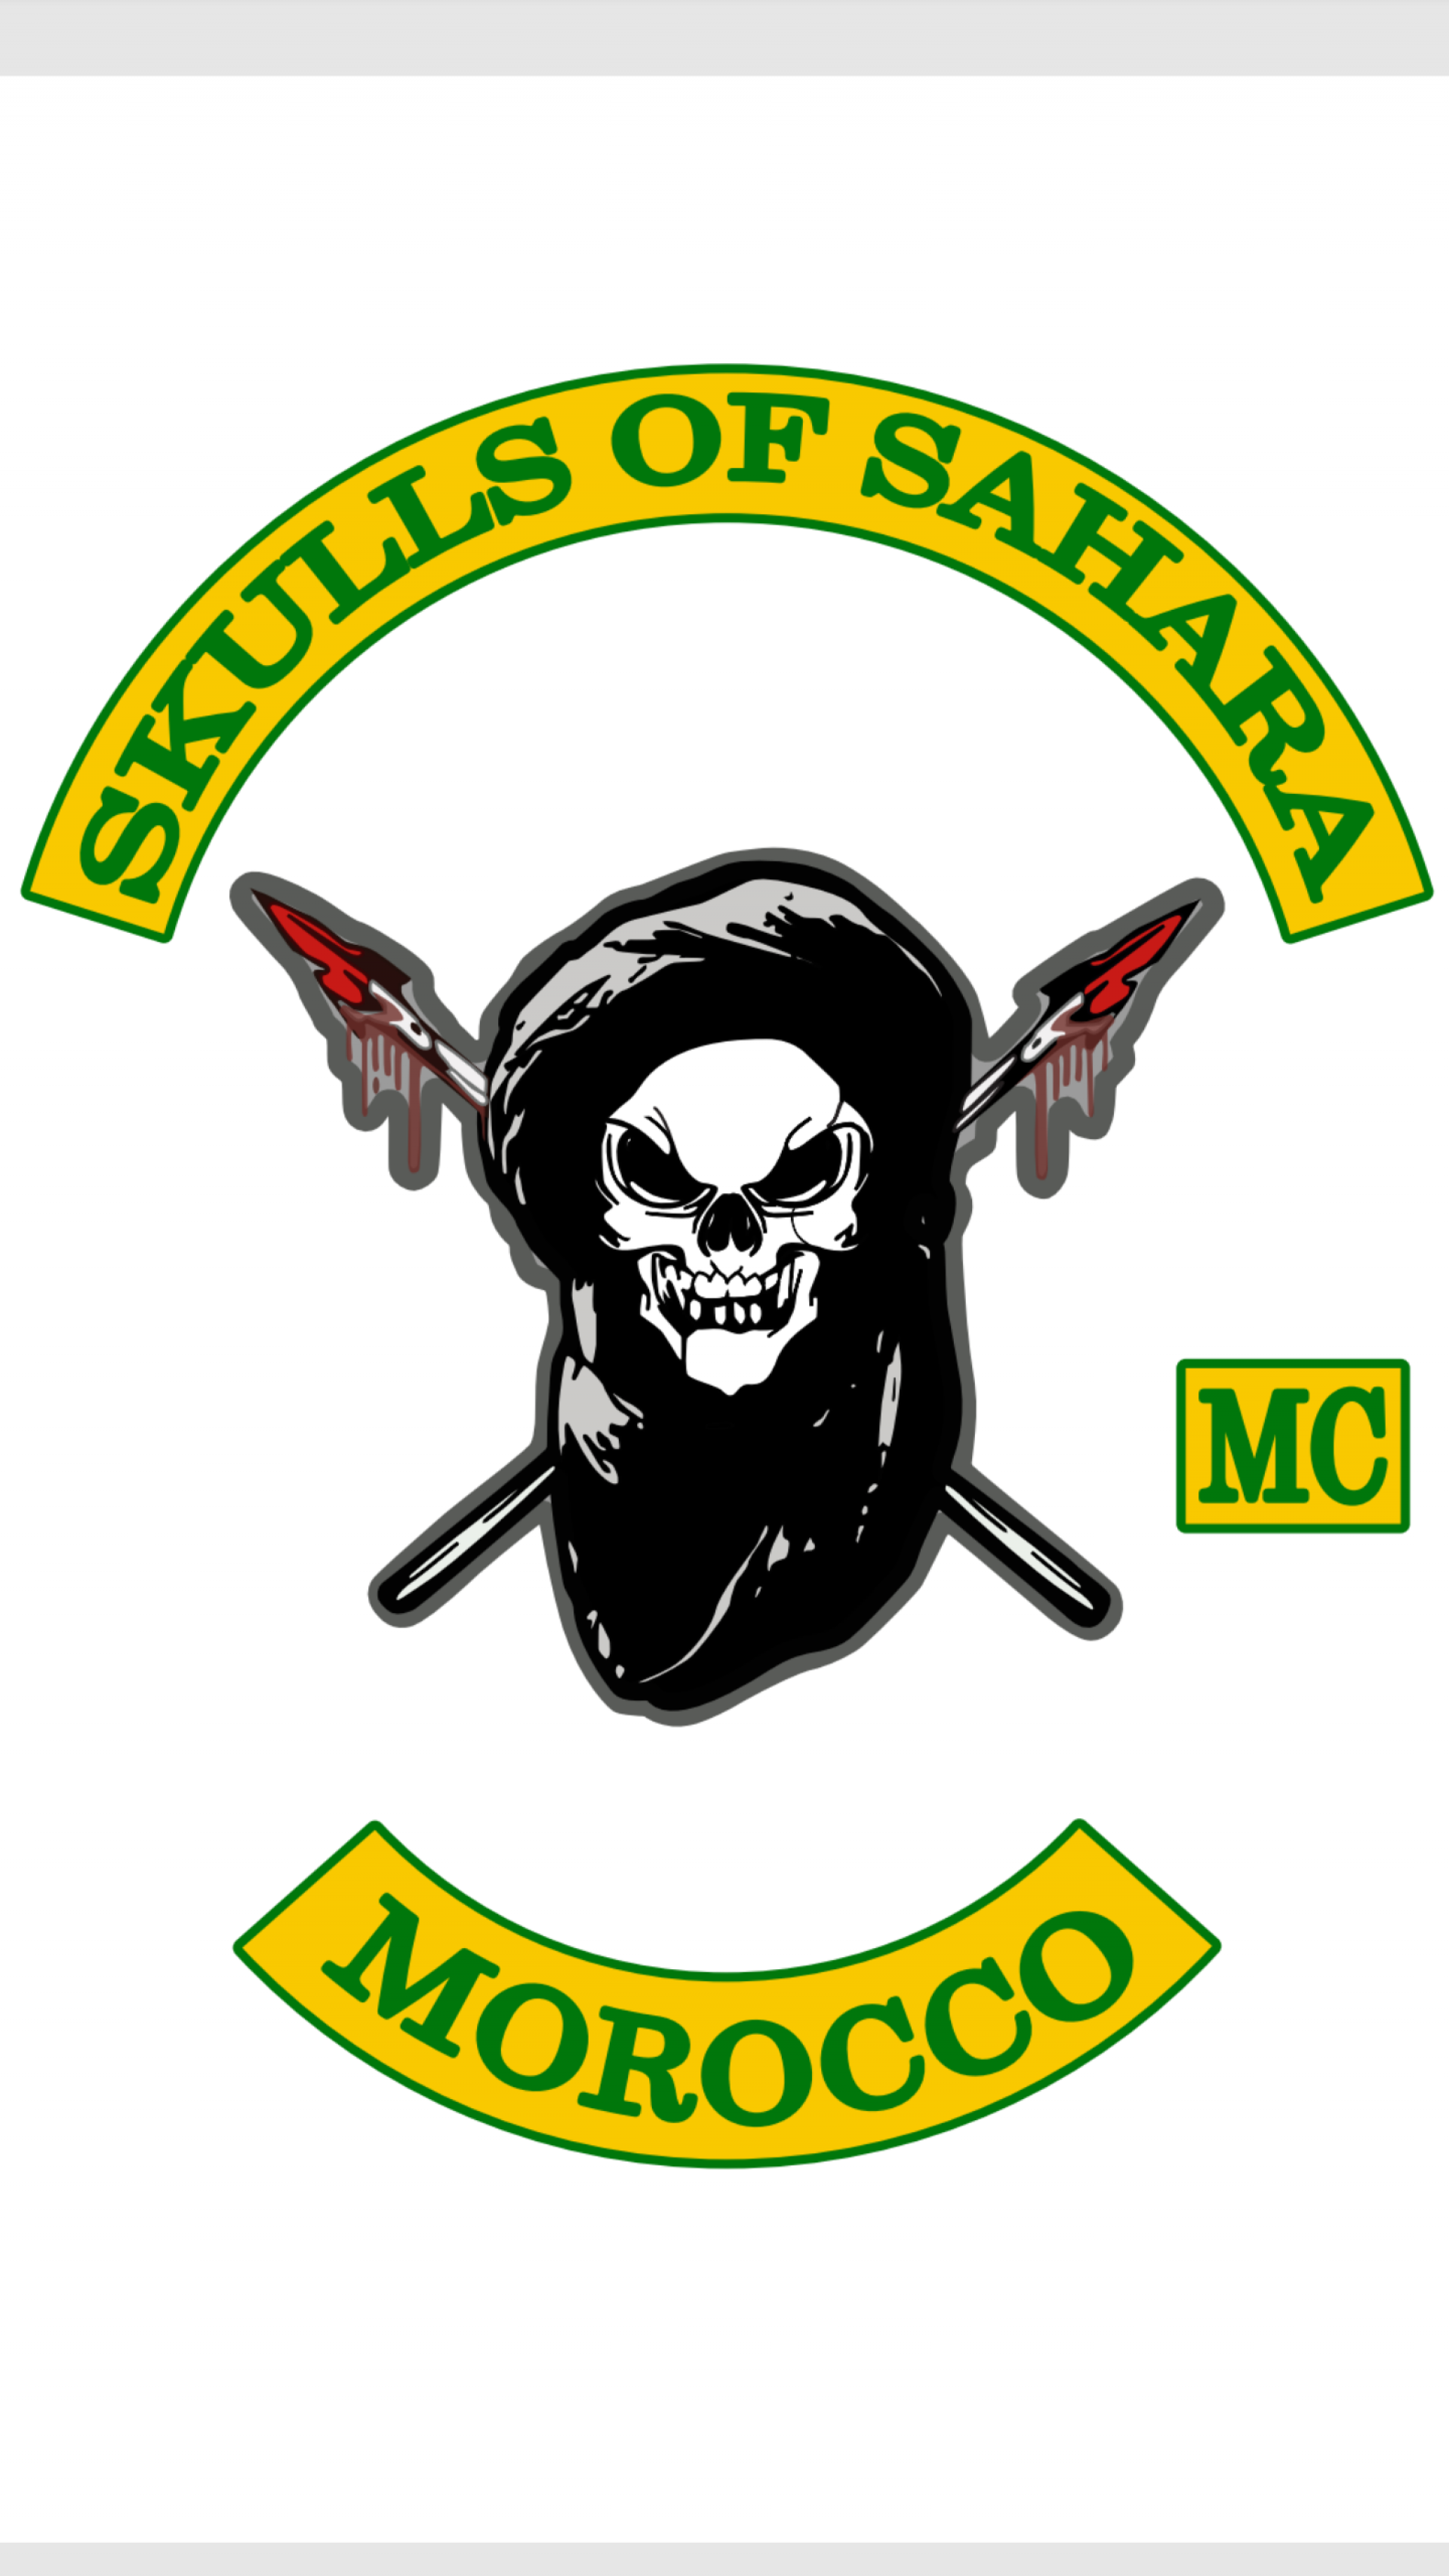 SKULLS OF SAHARA MC  logo